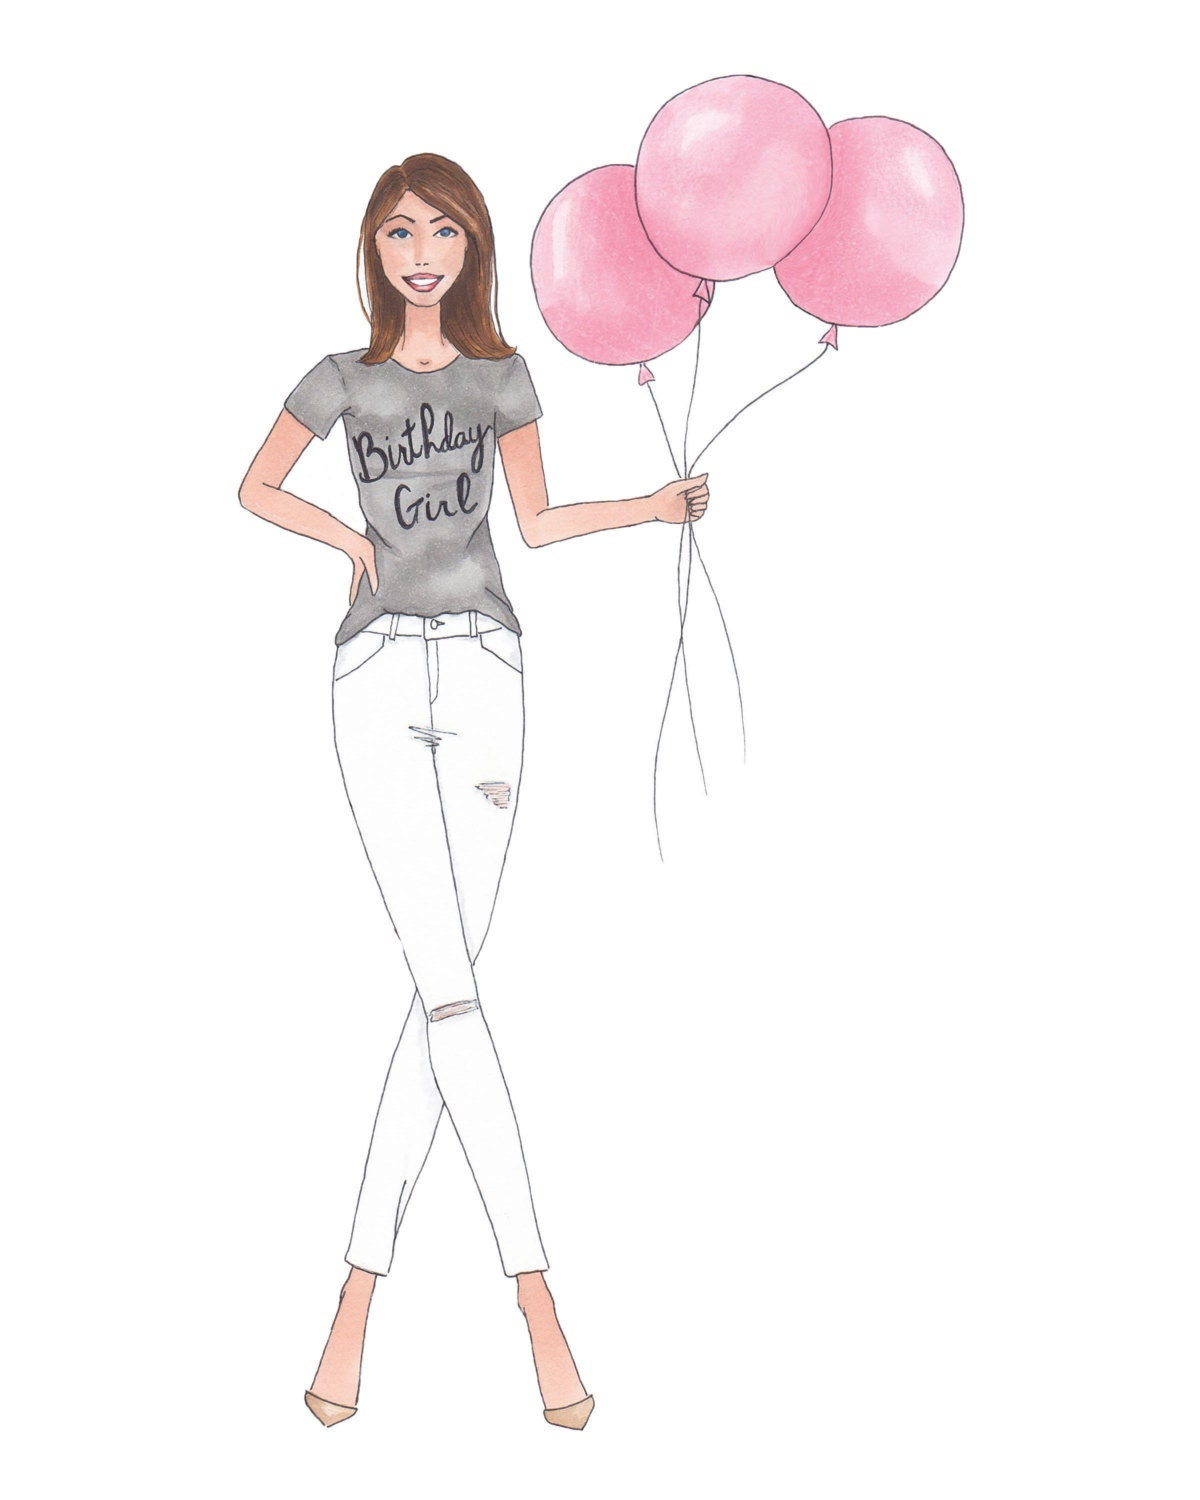 Birthday Girl Fashion Illustration Print